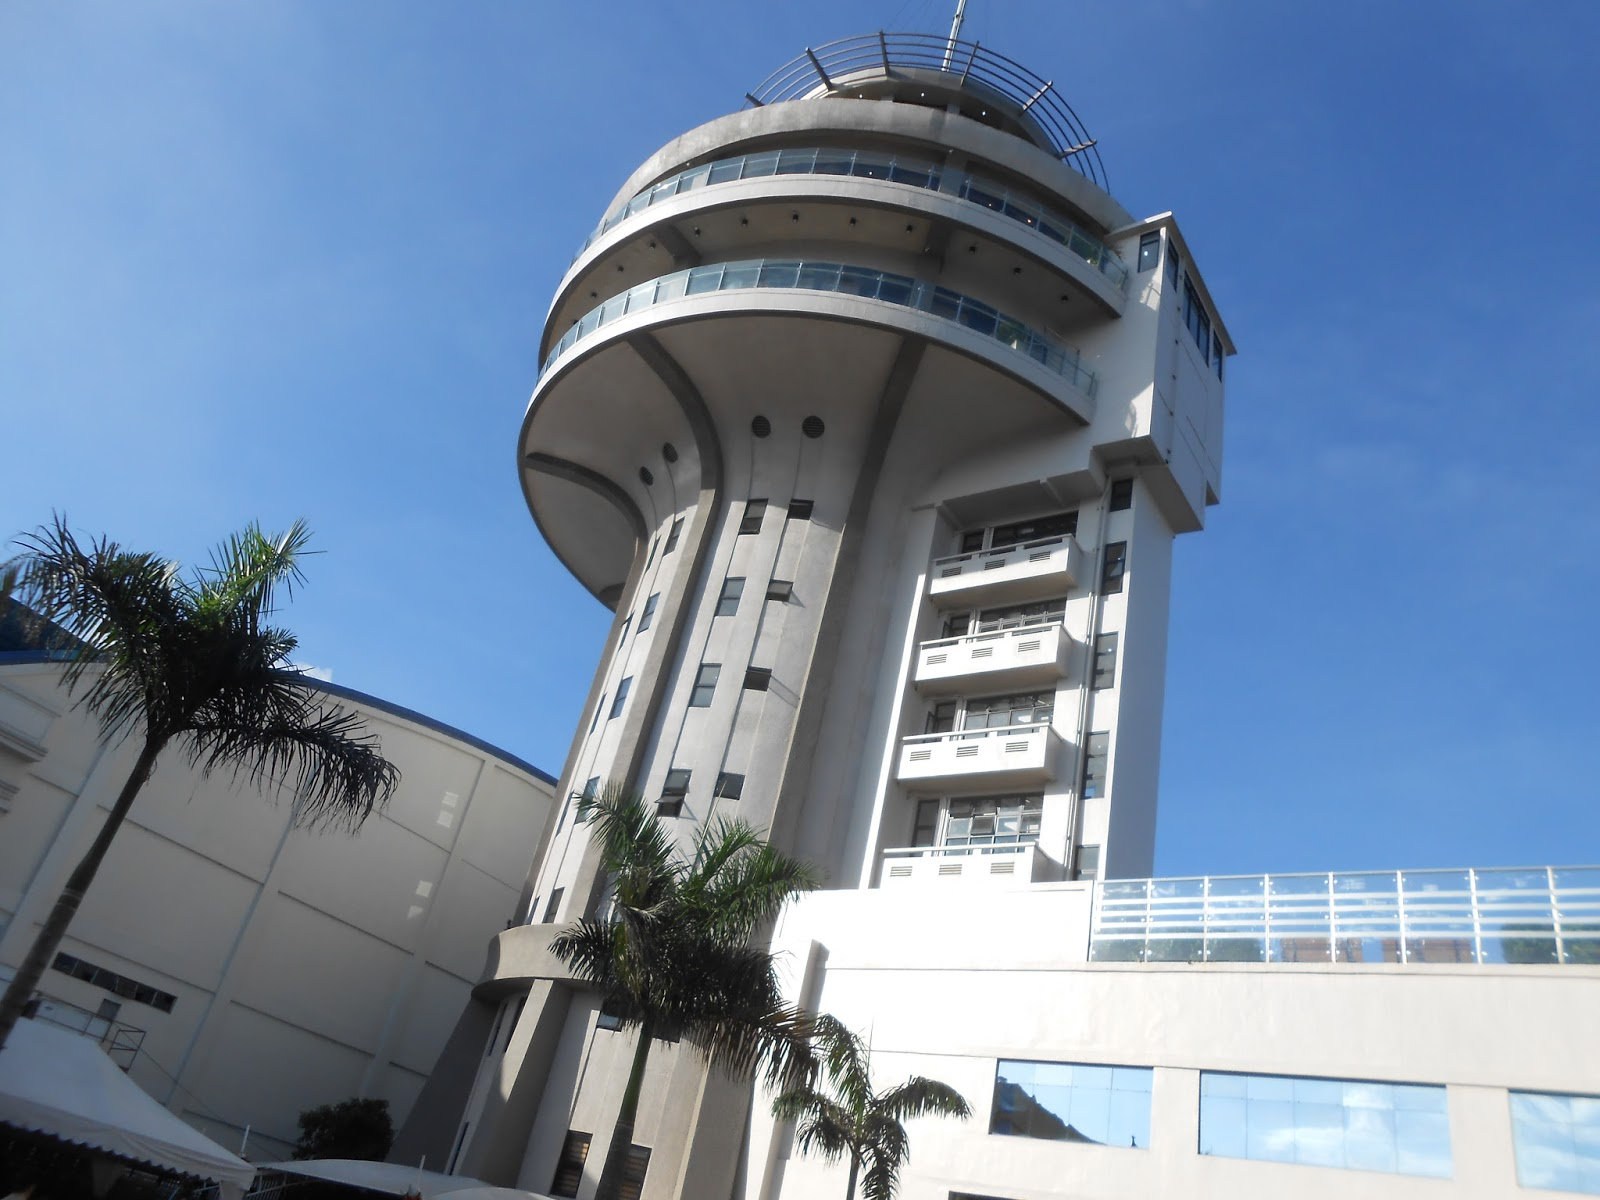 Pasig revolving tower opens again after three decades for Names of famous towers